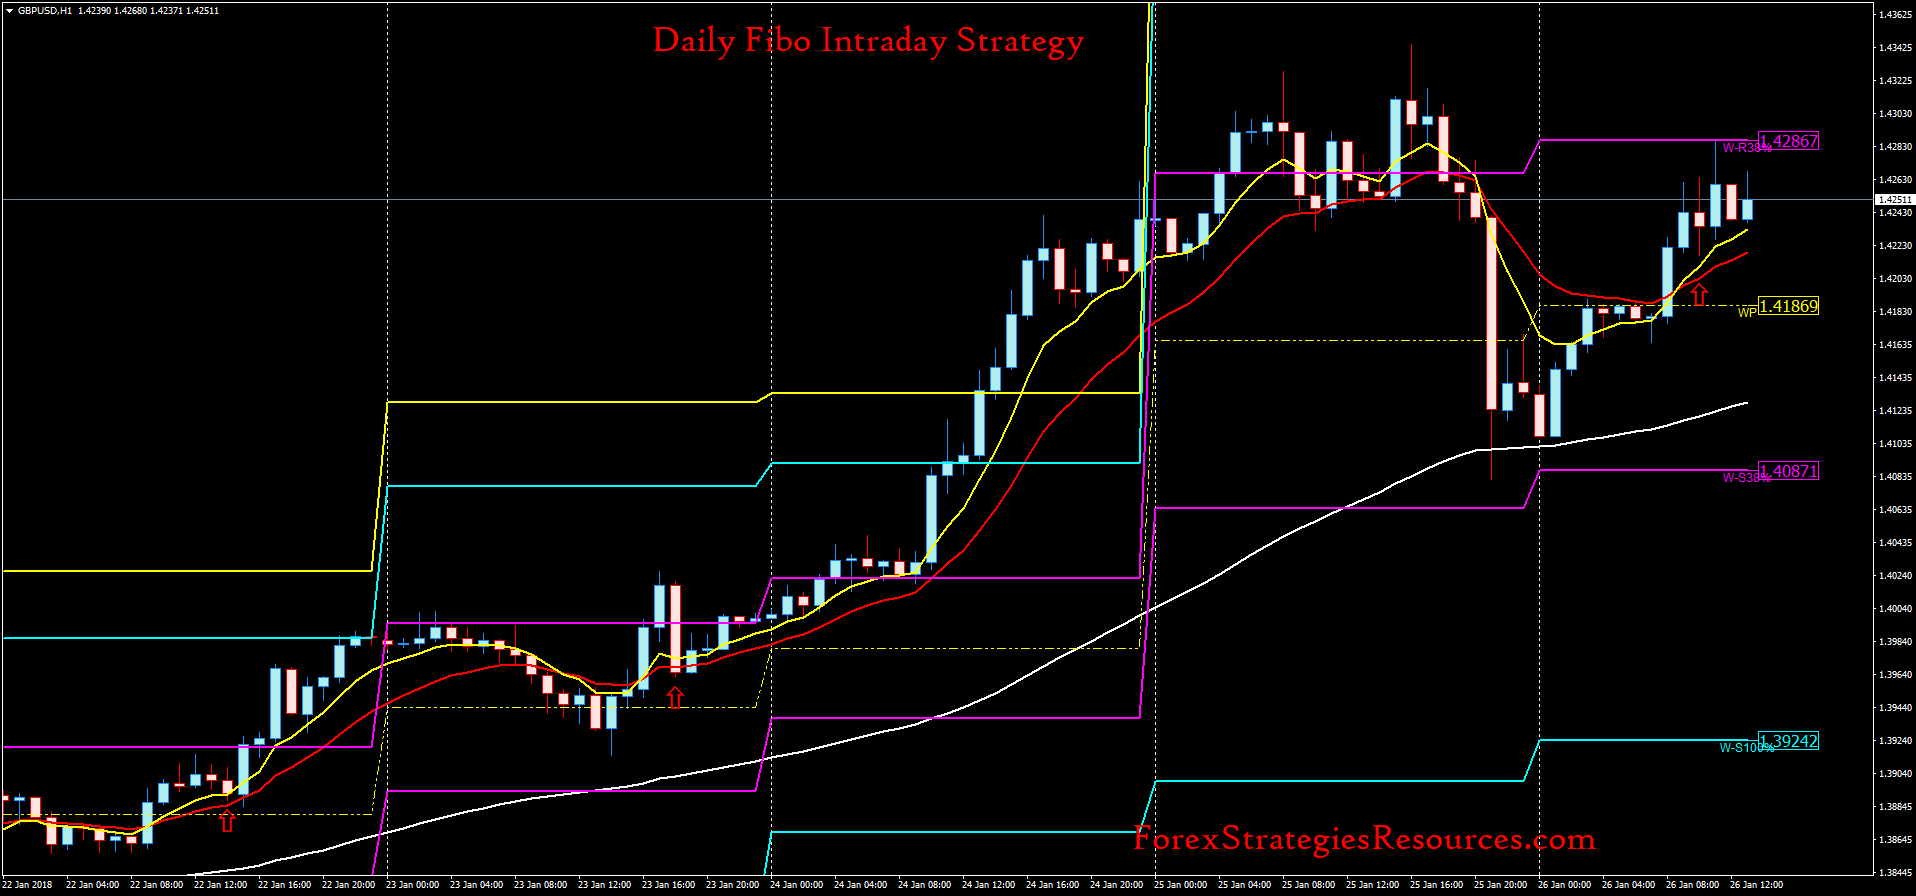 Forex strategies resources